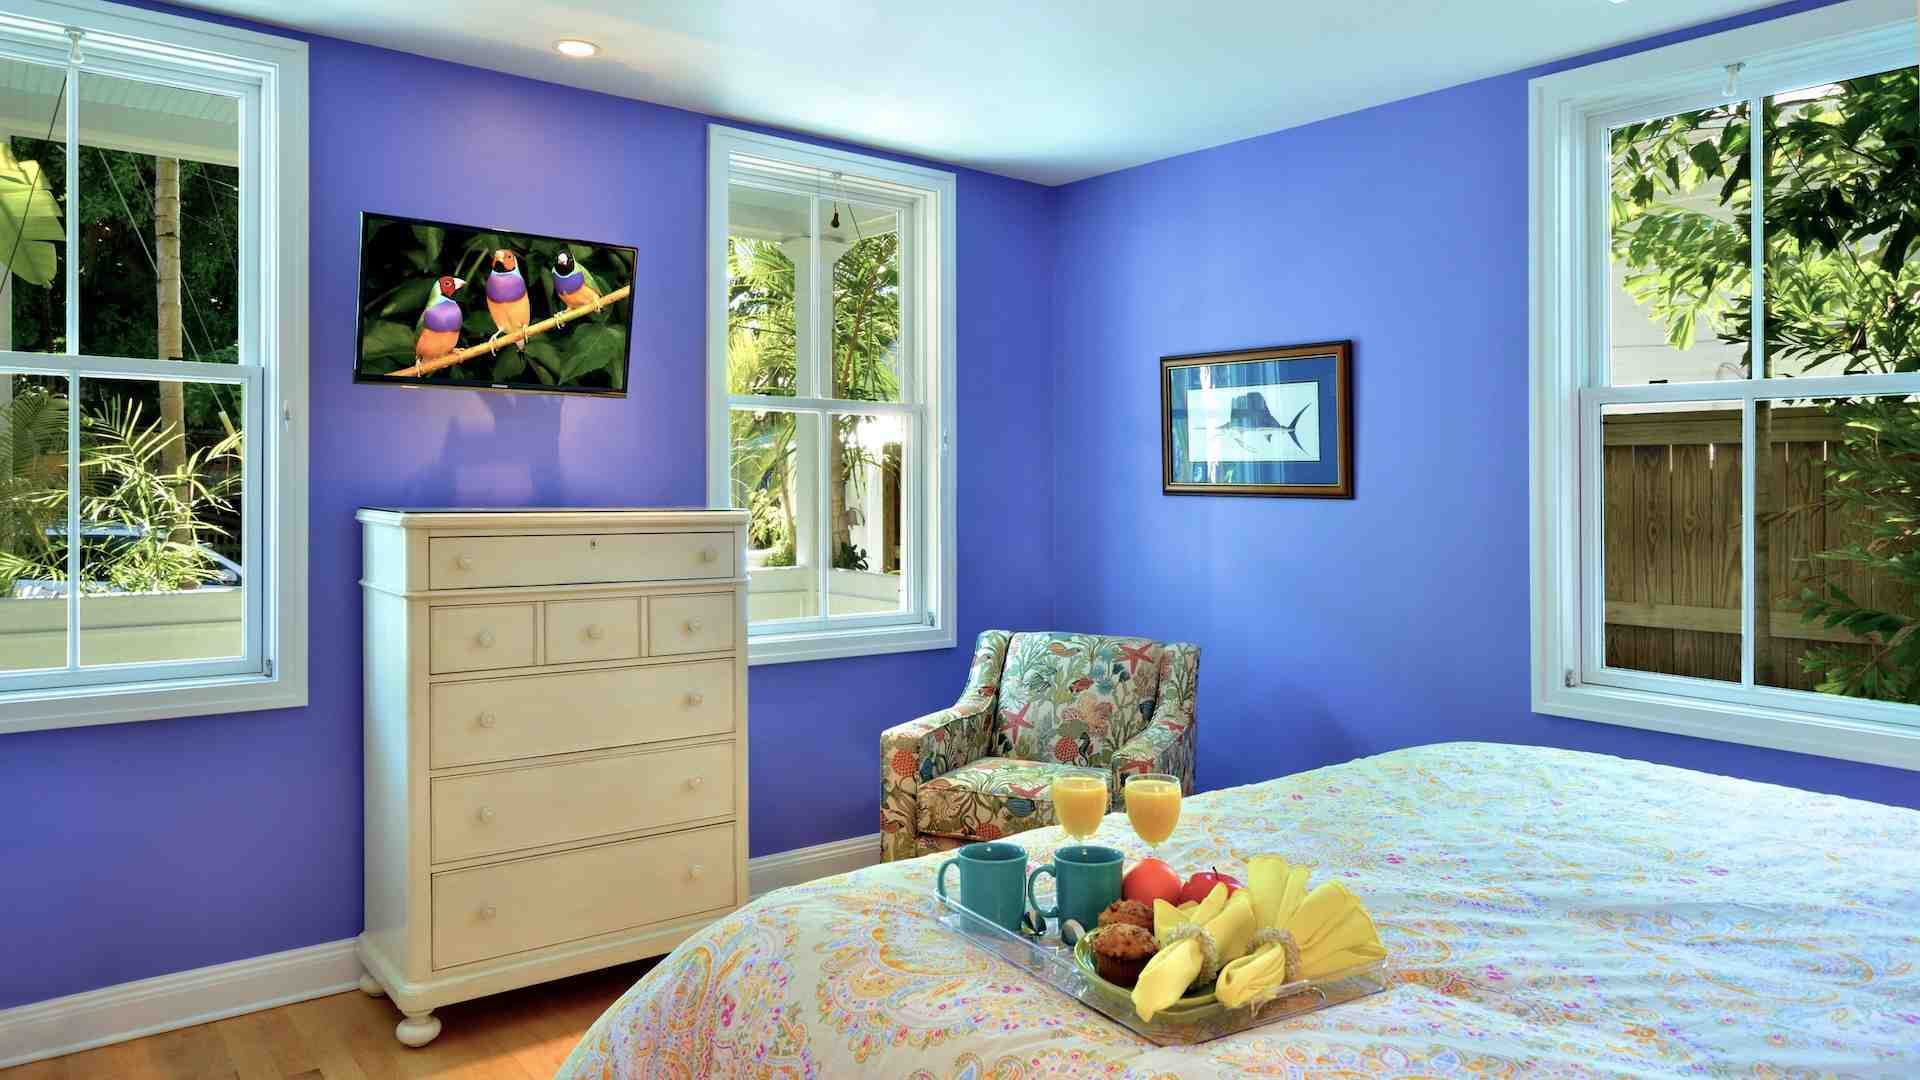 The master bedroom includes a flat screen TV and walk in closet...